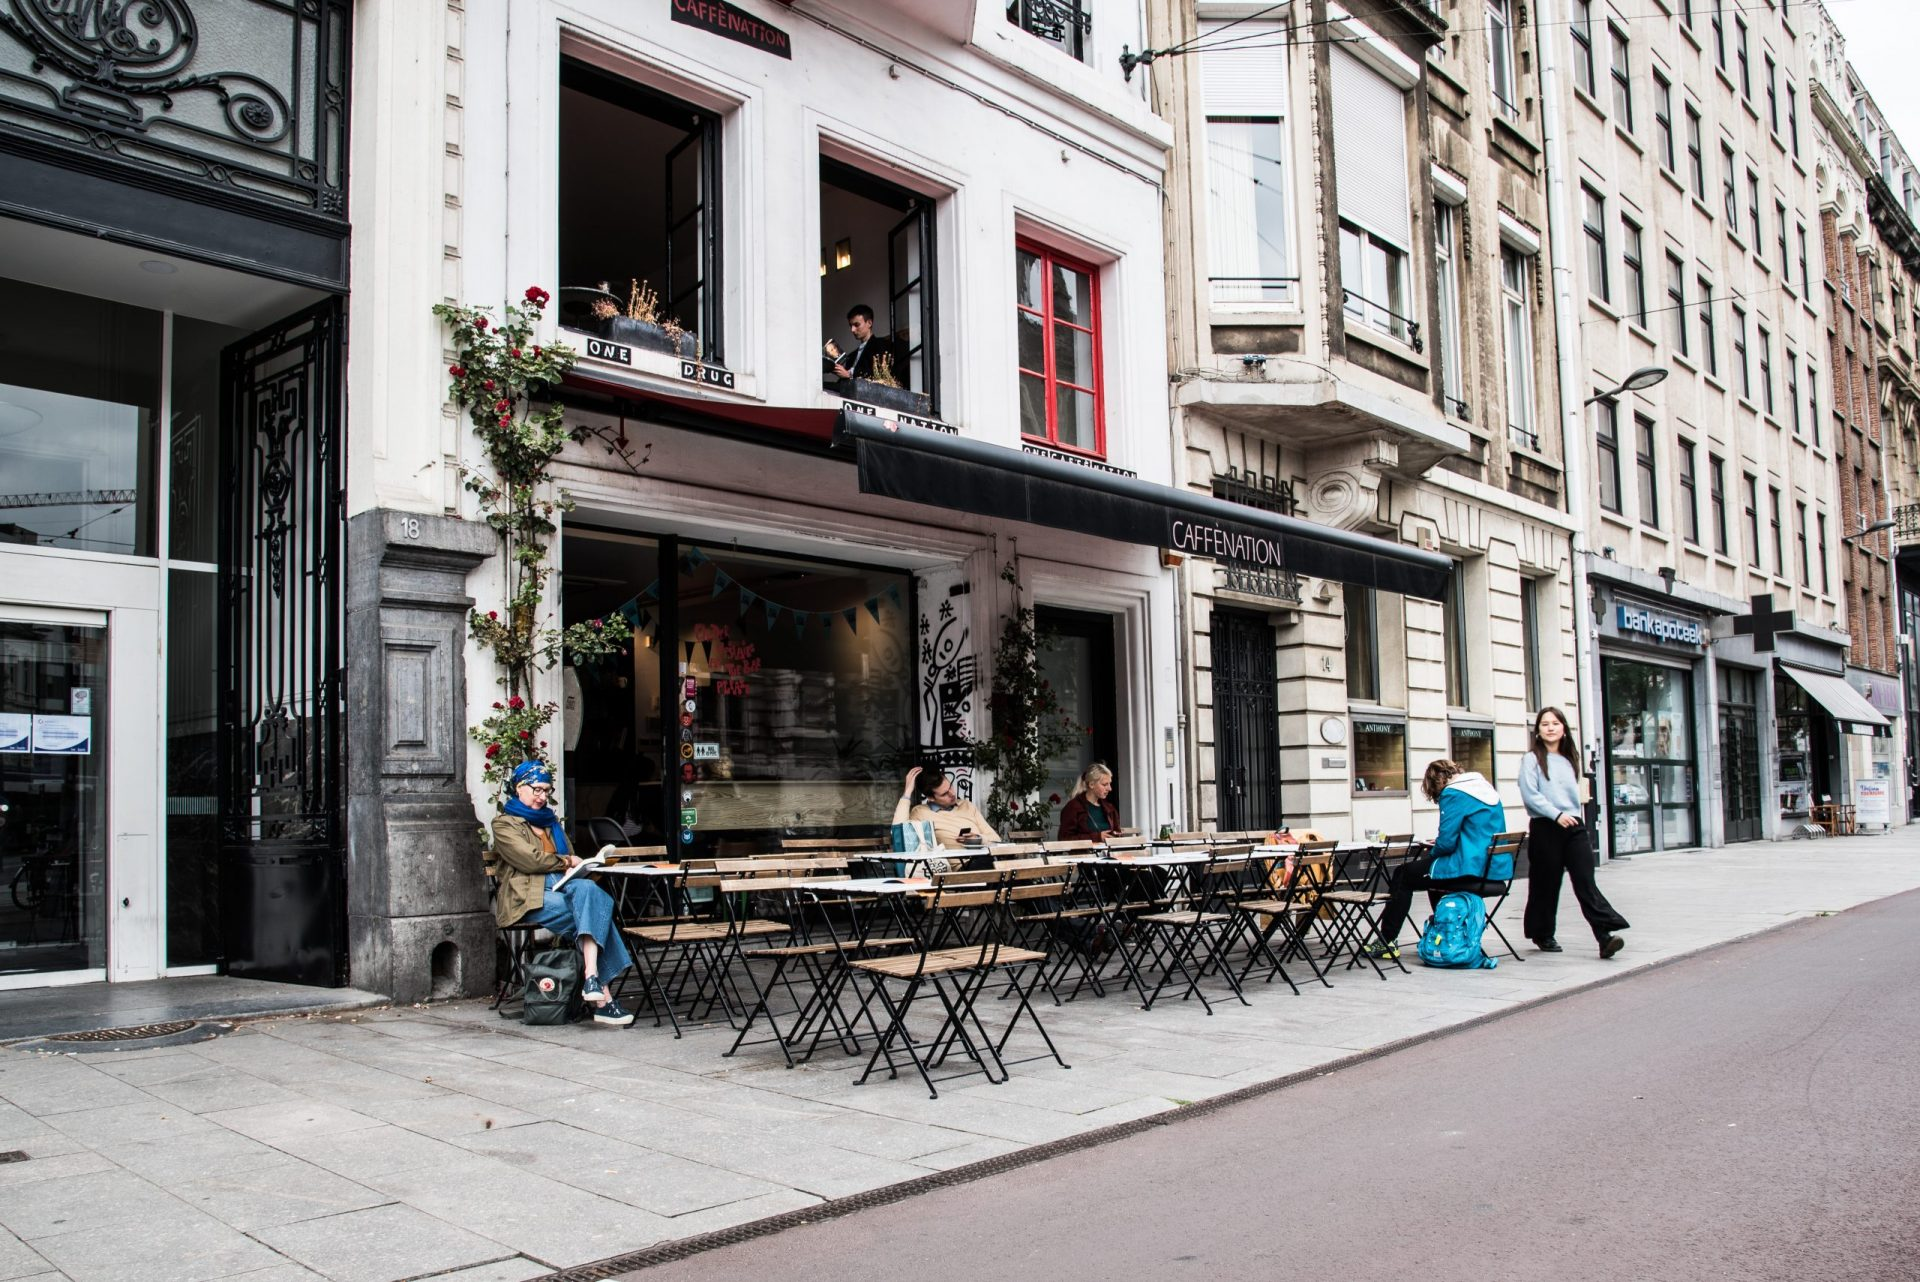 Caffènation in Antwerpen